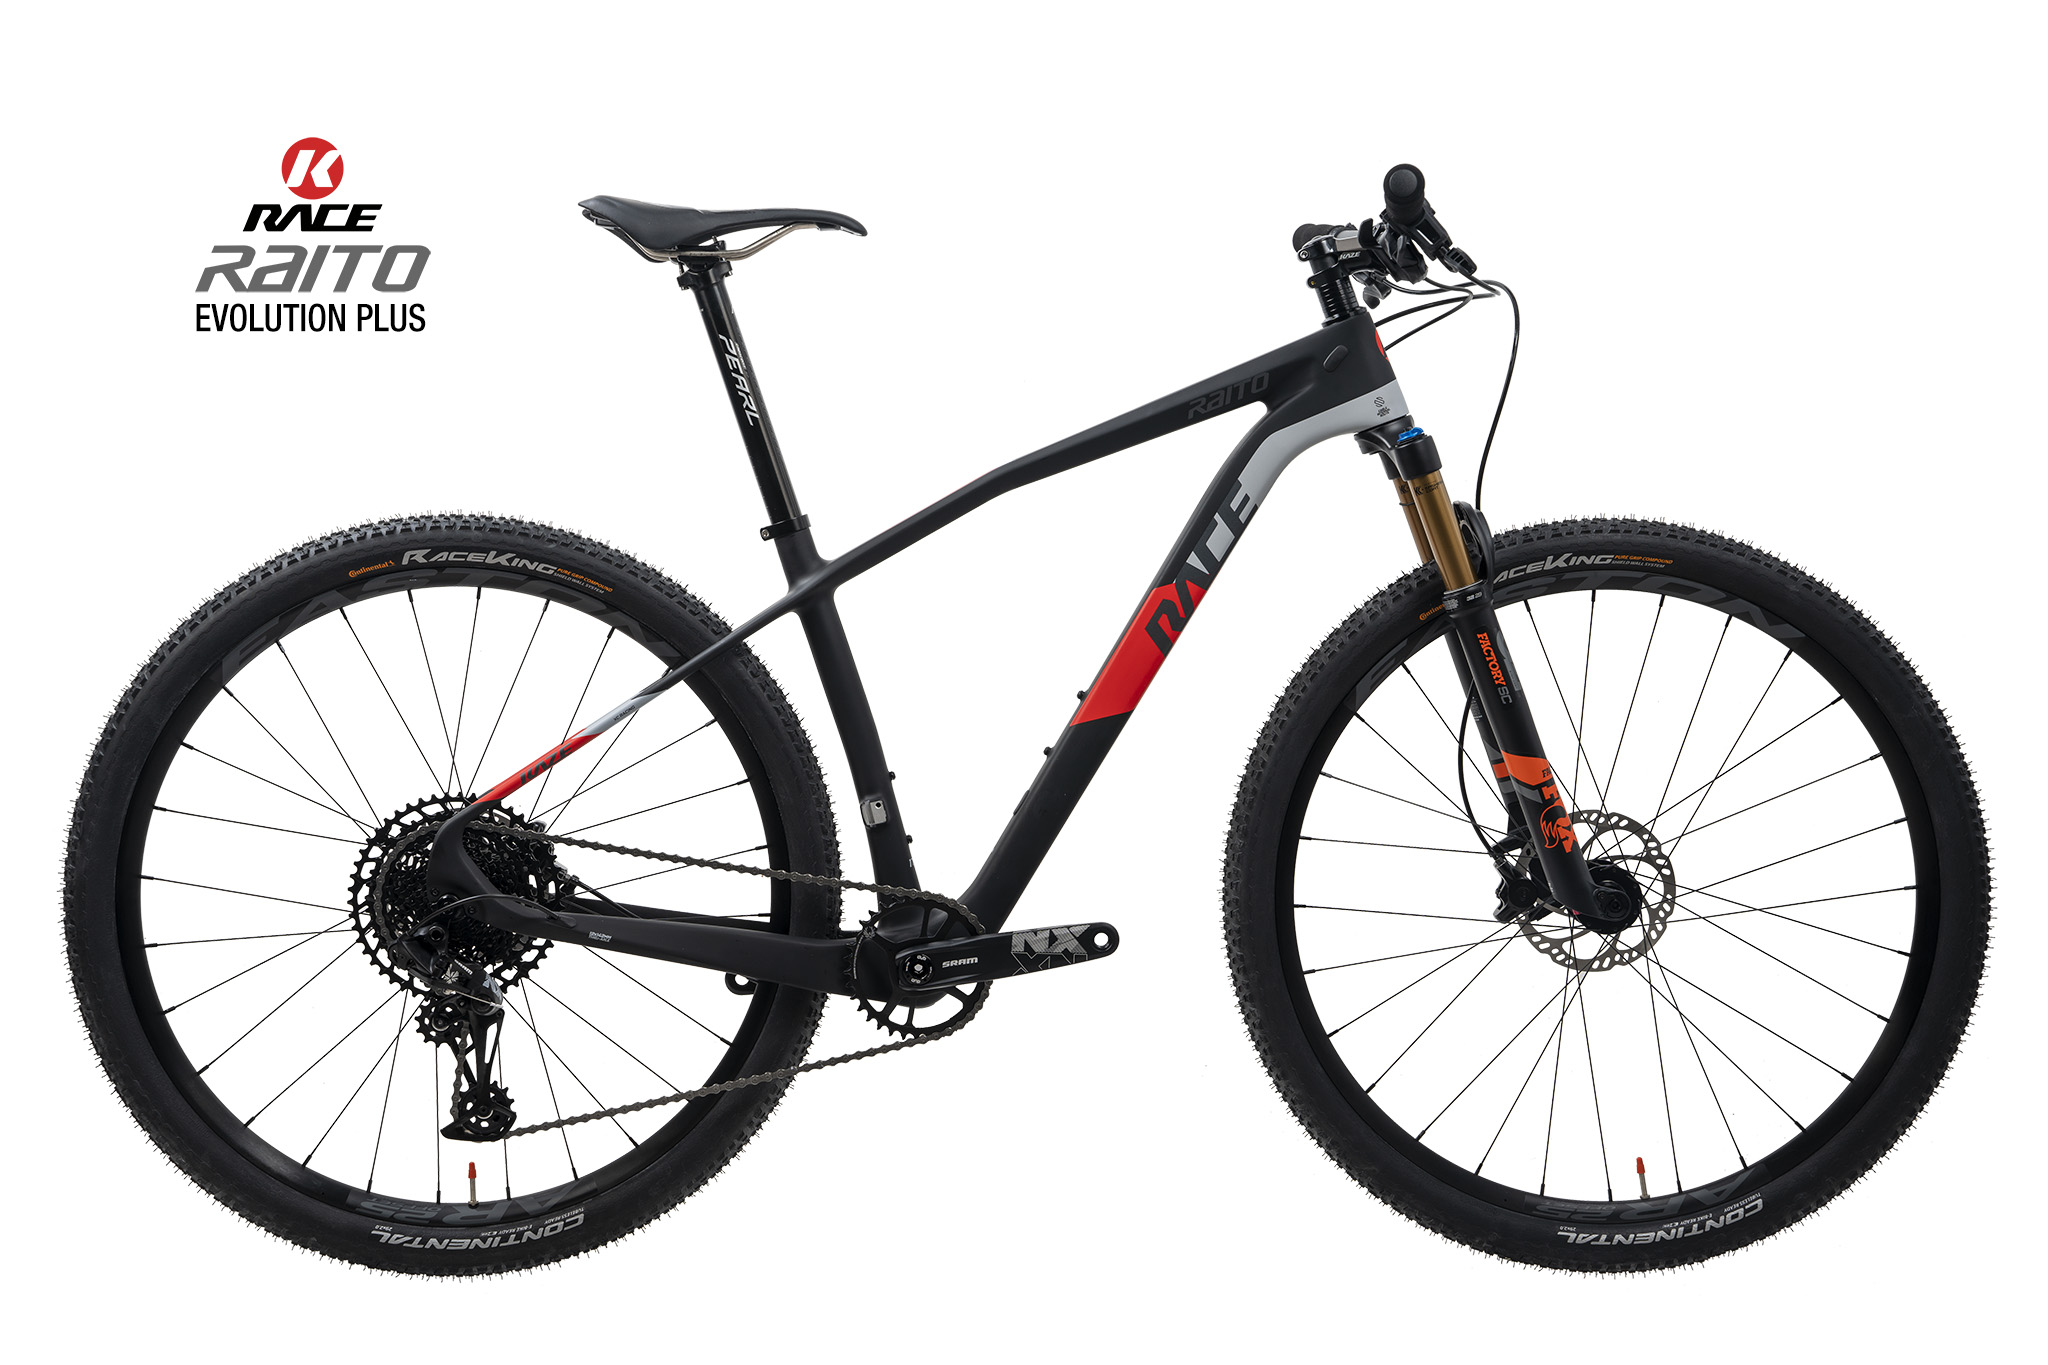 KAZE RACE | Raito 29er (Evolution Plus)